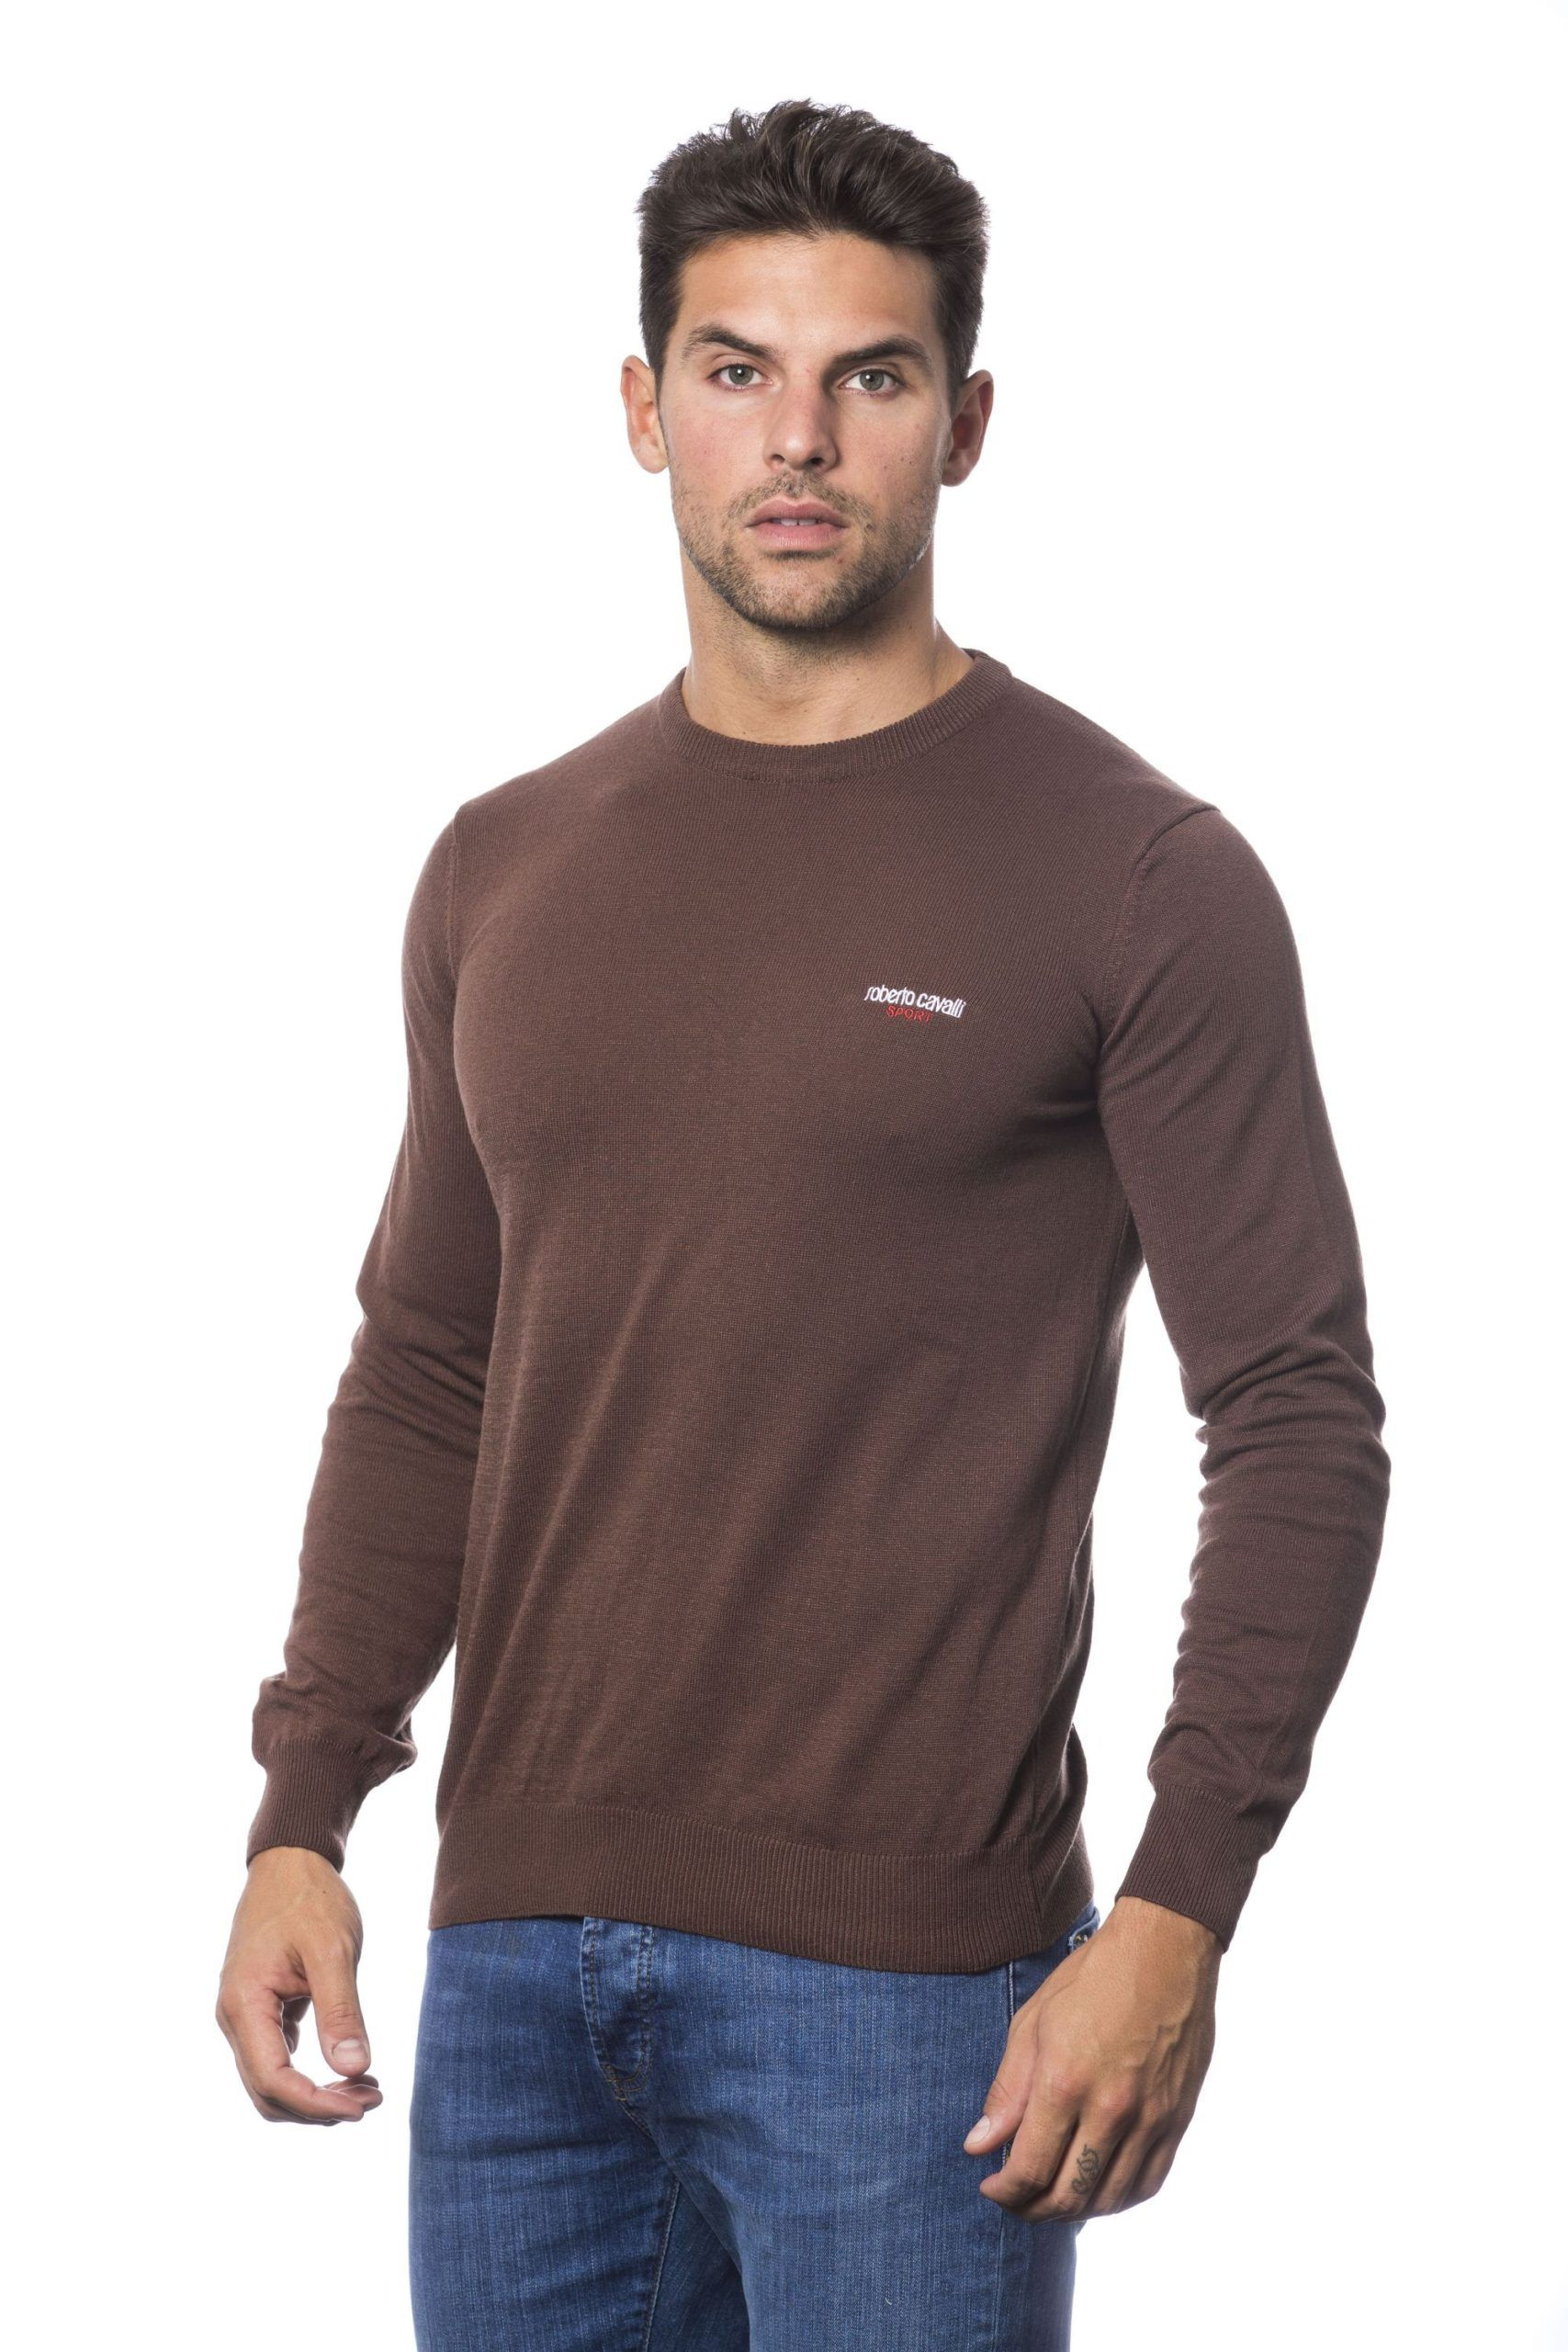 Roberto Cavalli Sport Marrone Sweater